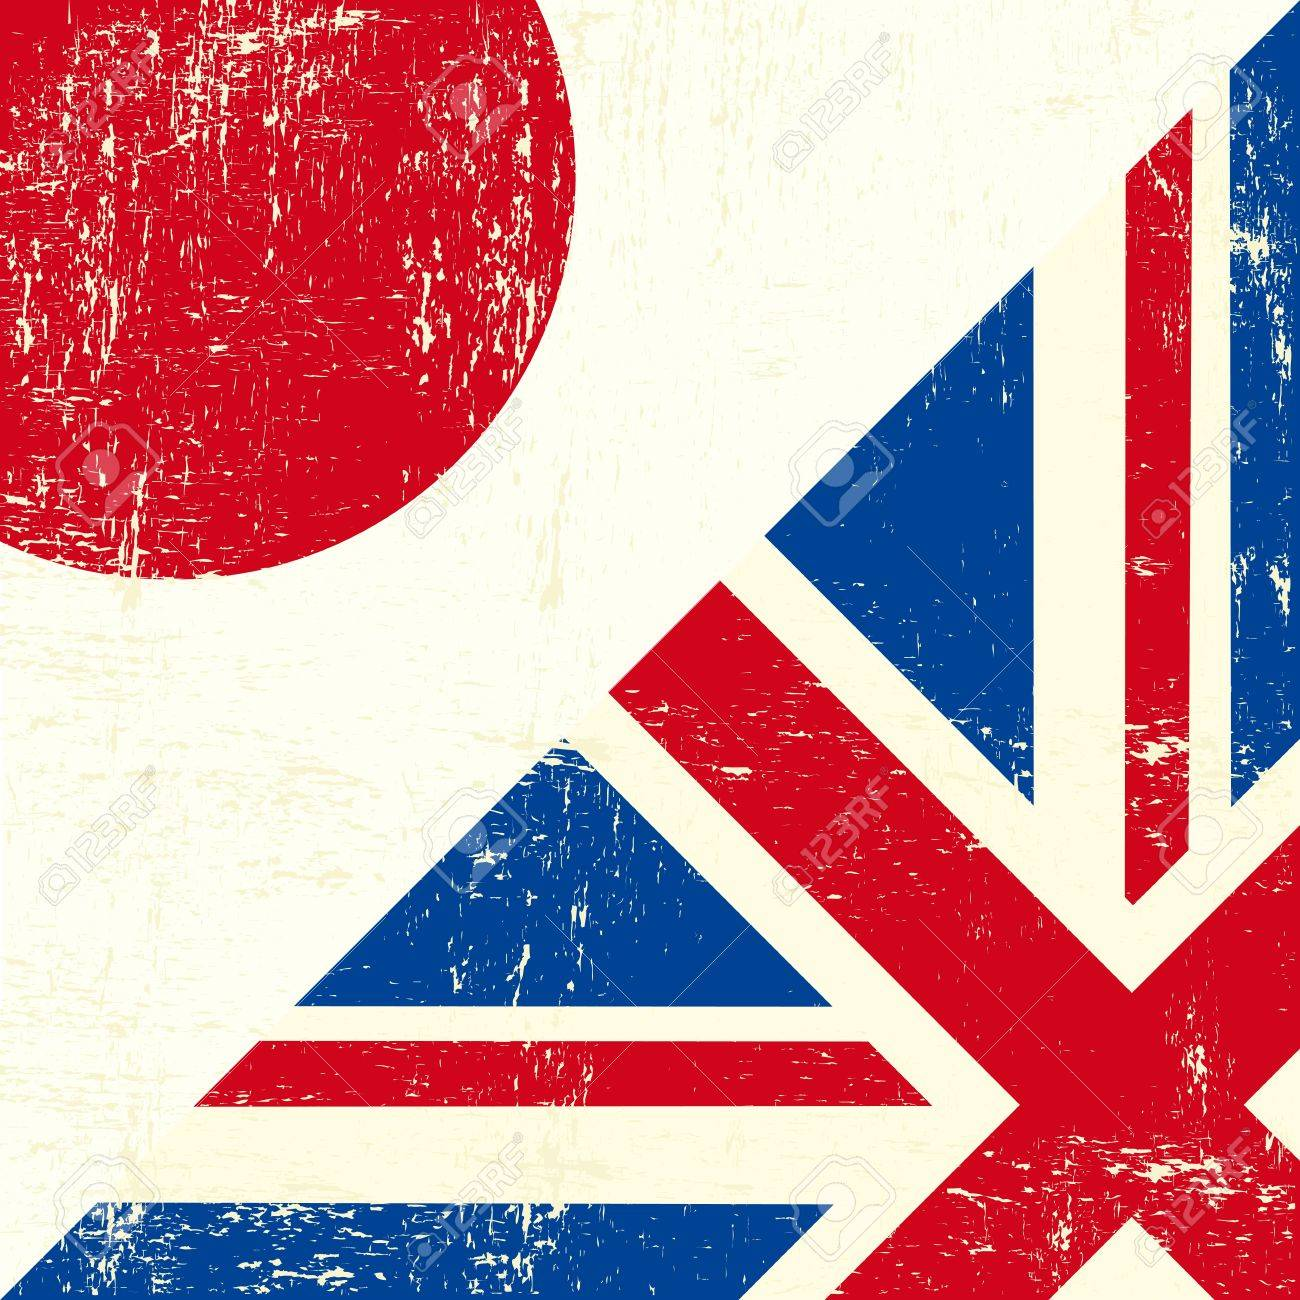 ⟡ COF XXXIV ⟡    STAVANGER  - Página 3 19350340-this-flag-represents-the-relationship-between-UK-union-and-Japan-Stock-Vector